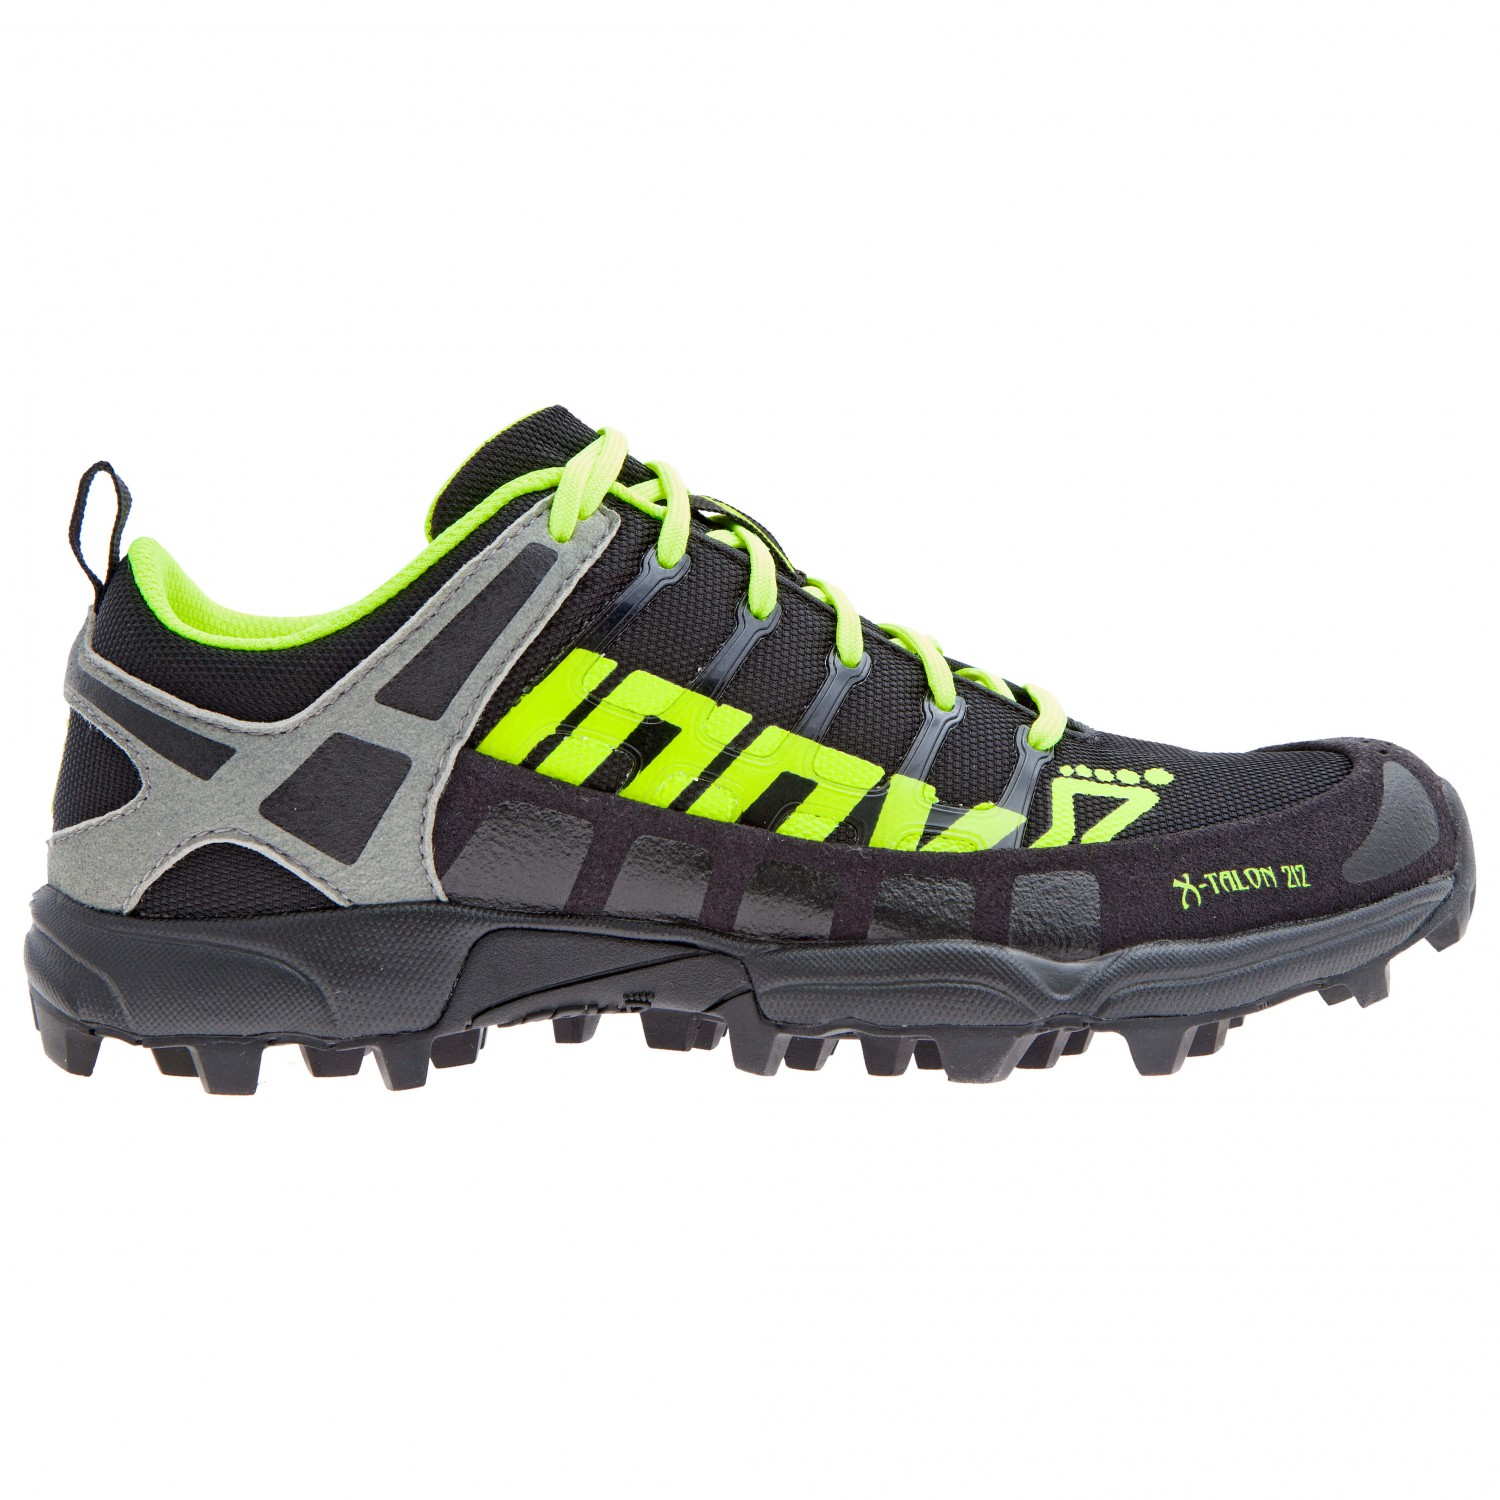 Inov-8 X-TALON 212 - Trail running shoes - black/neon yellow/grey